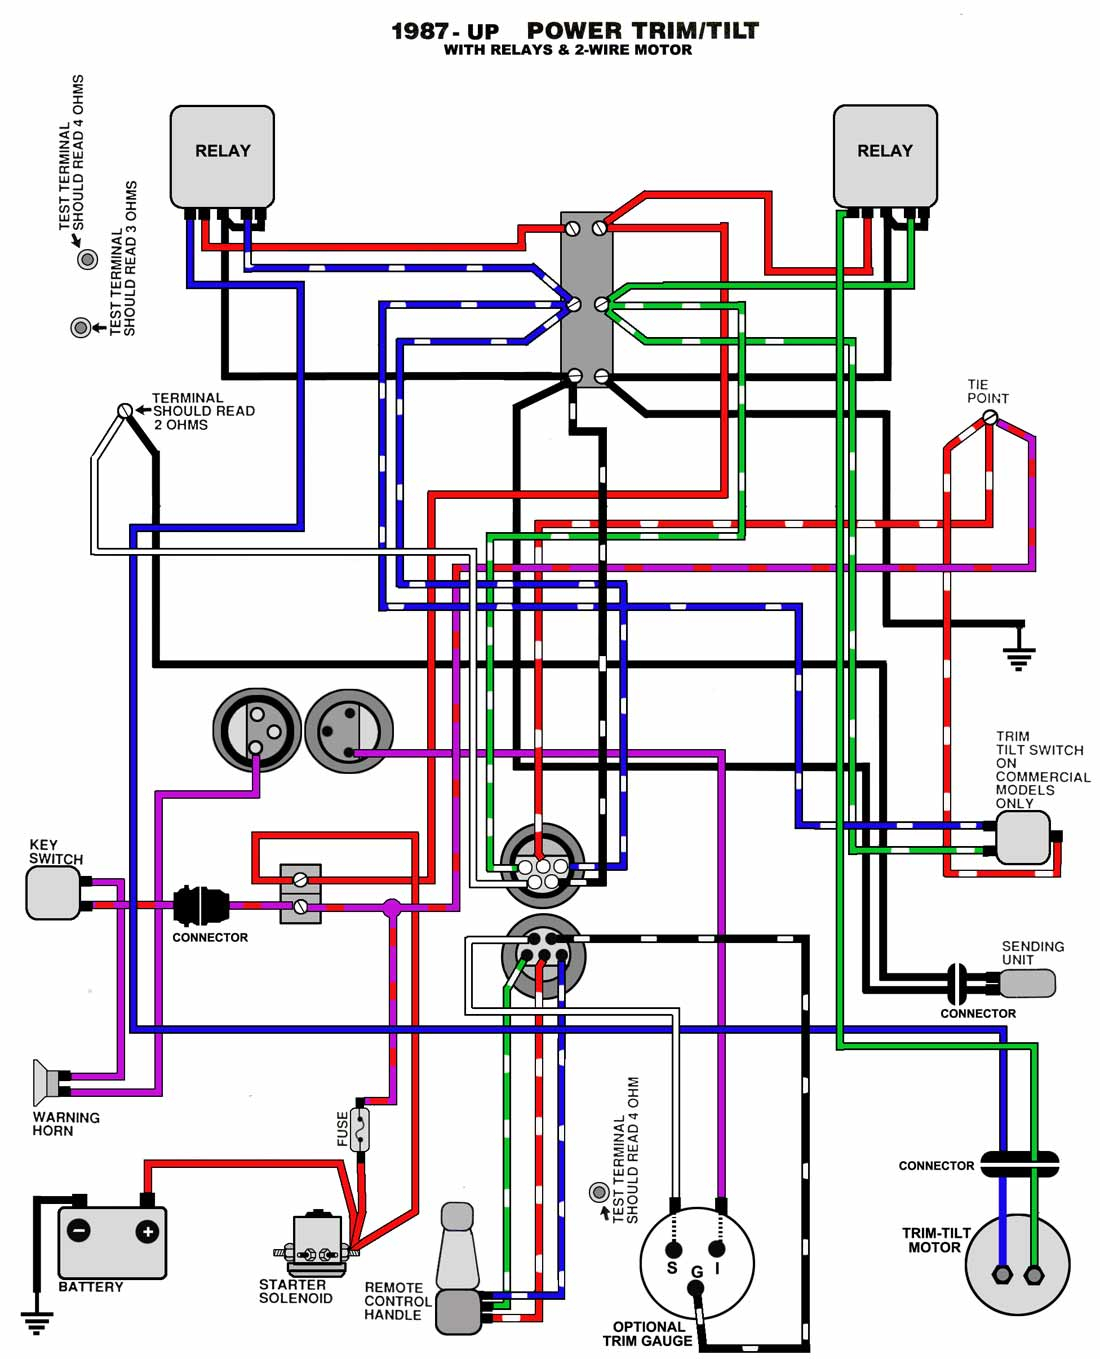 1995 mercury 60hp outboard ignition wiring harness diagram 60 hp mercury  prop chart 1997 mercury outboard